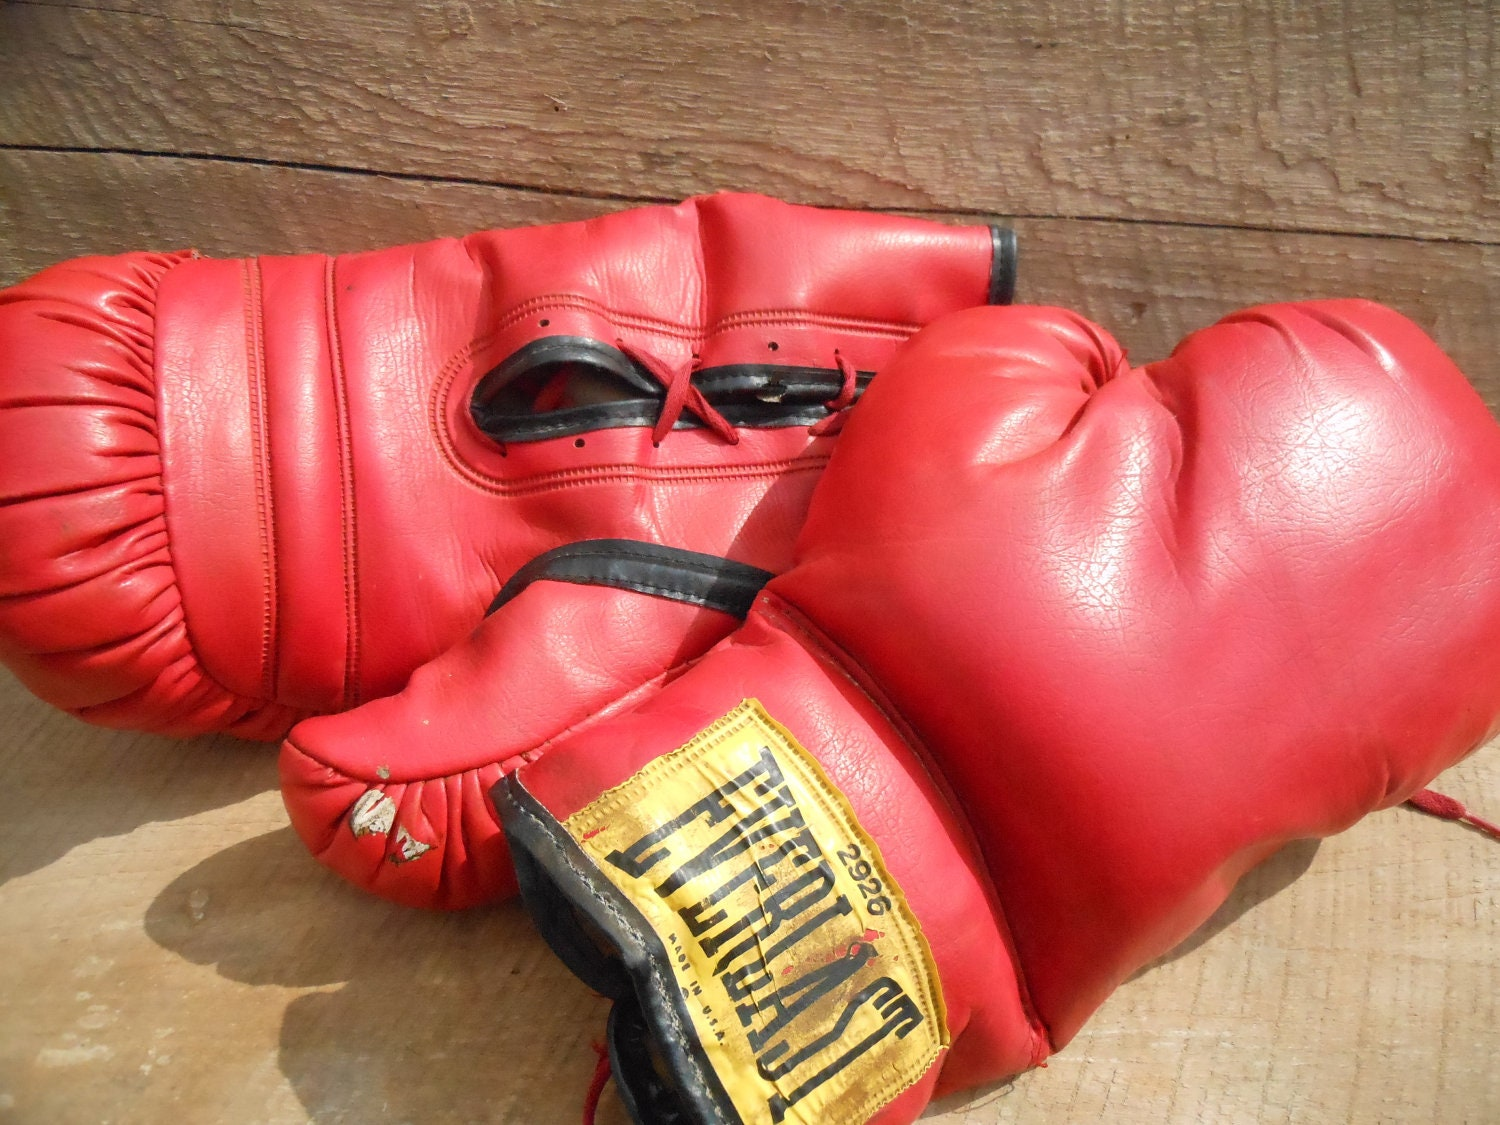 Shiv Naresh Teens Boxing Gloves 12oz: Vintage Red Everlast Lace-Up Boxing Gloves